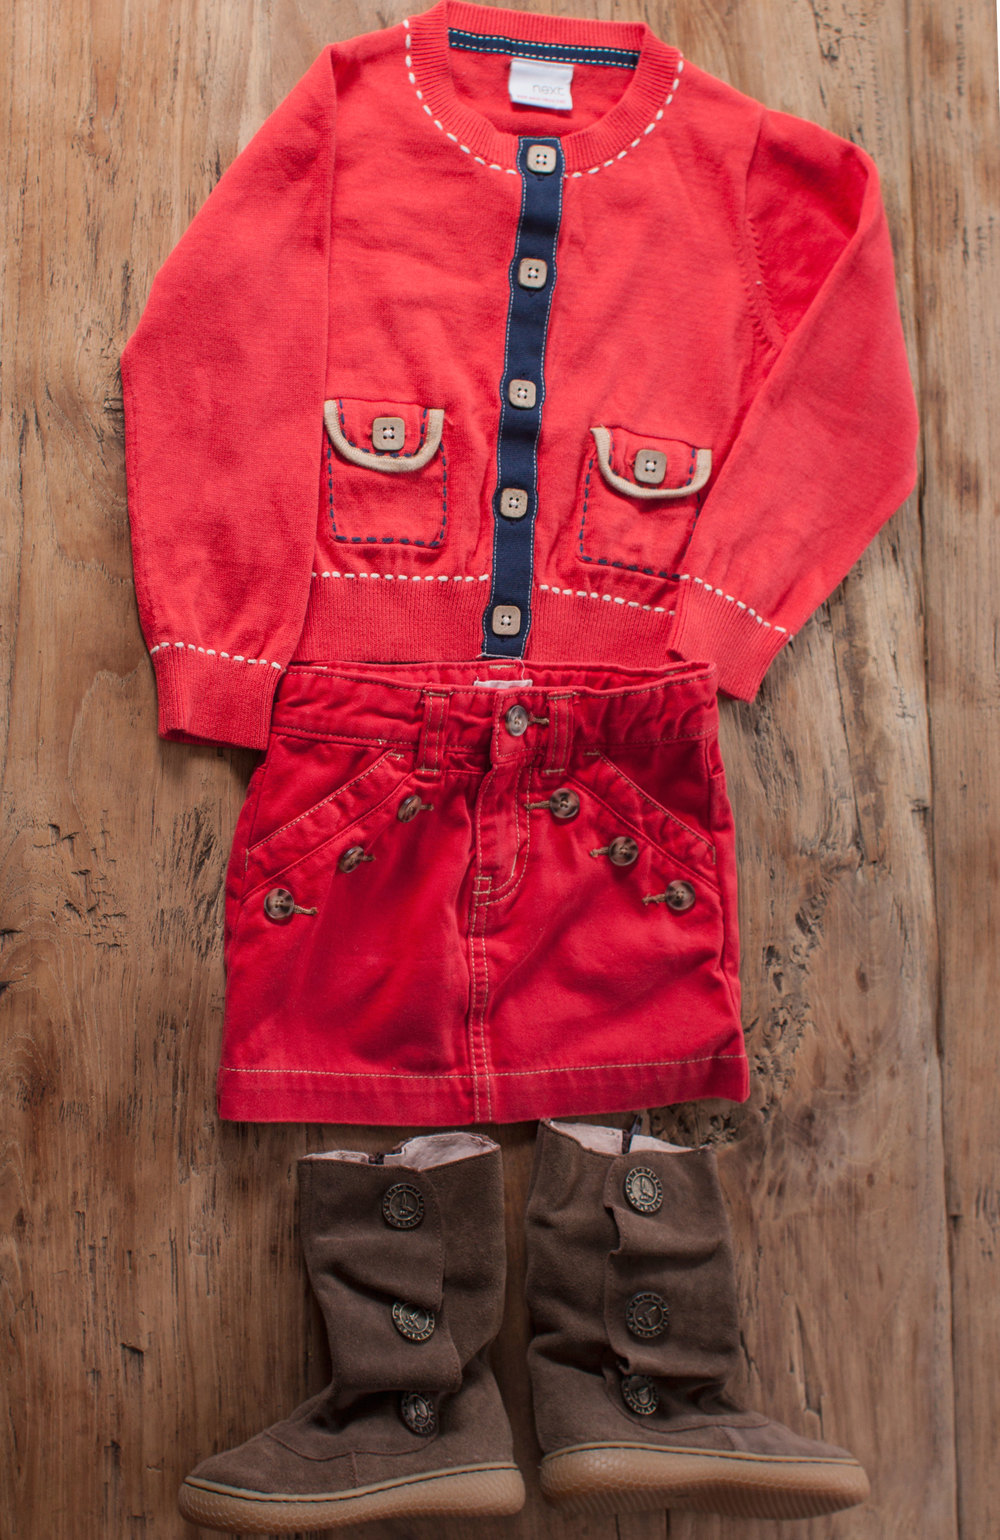 Image includes Girls Next UK red cardigan. Size: 2T $6.50.